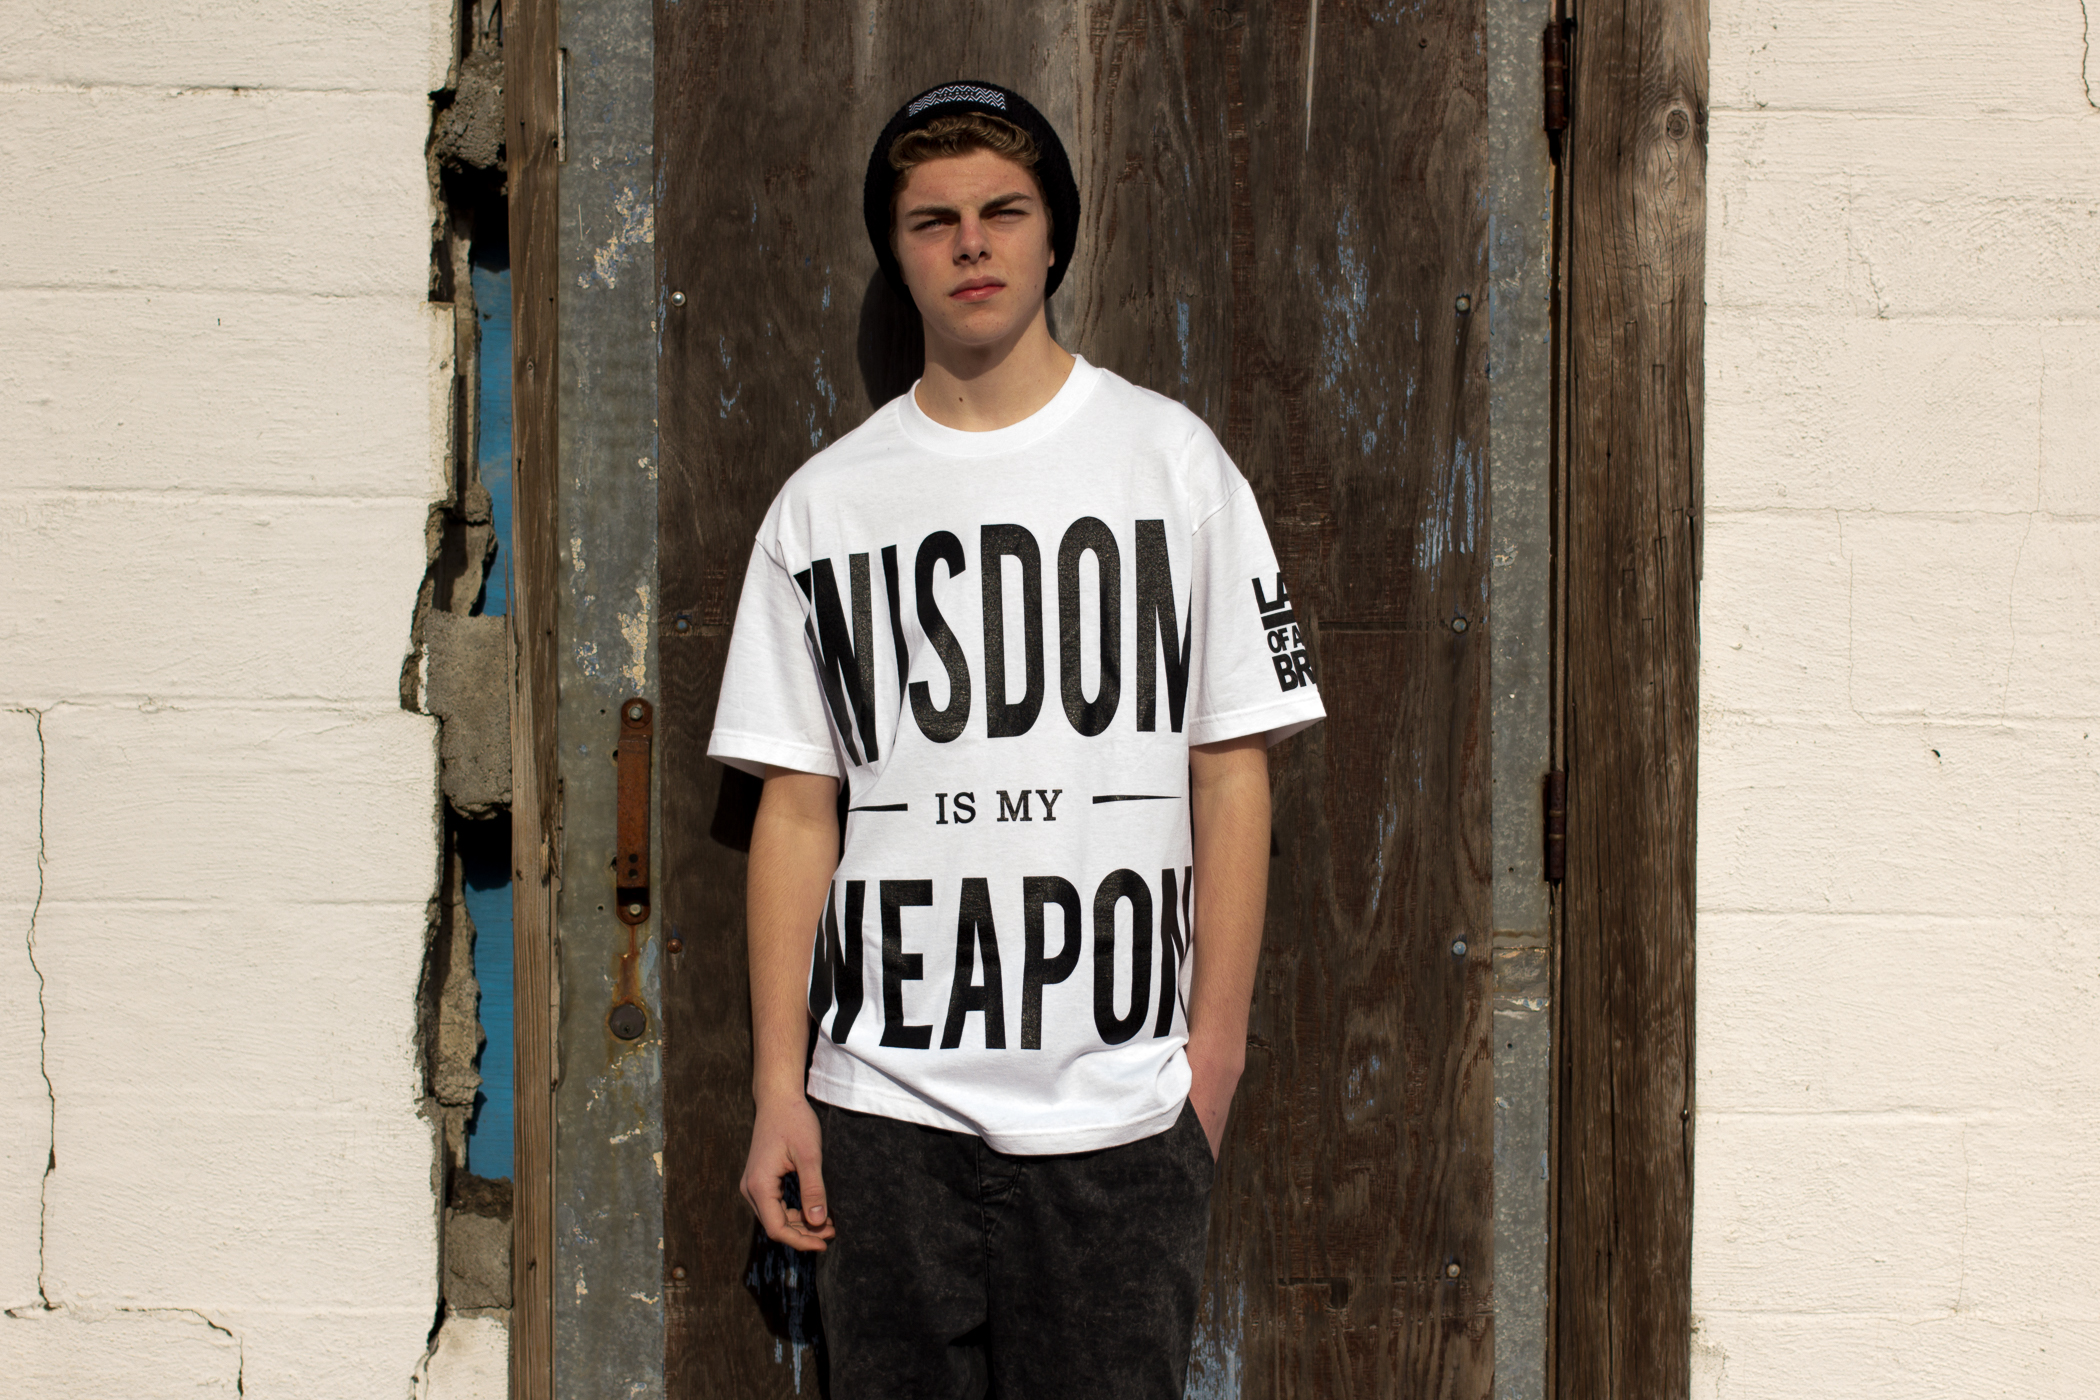 Wisdom Is My Weapon T-Shirt